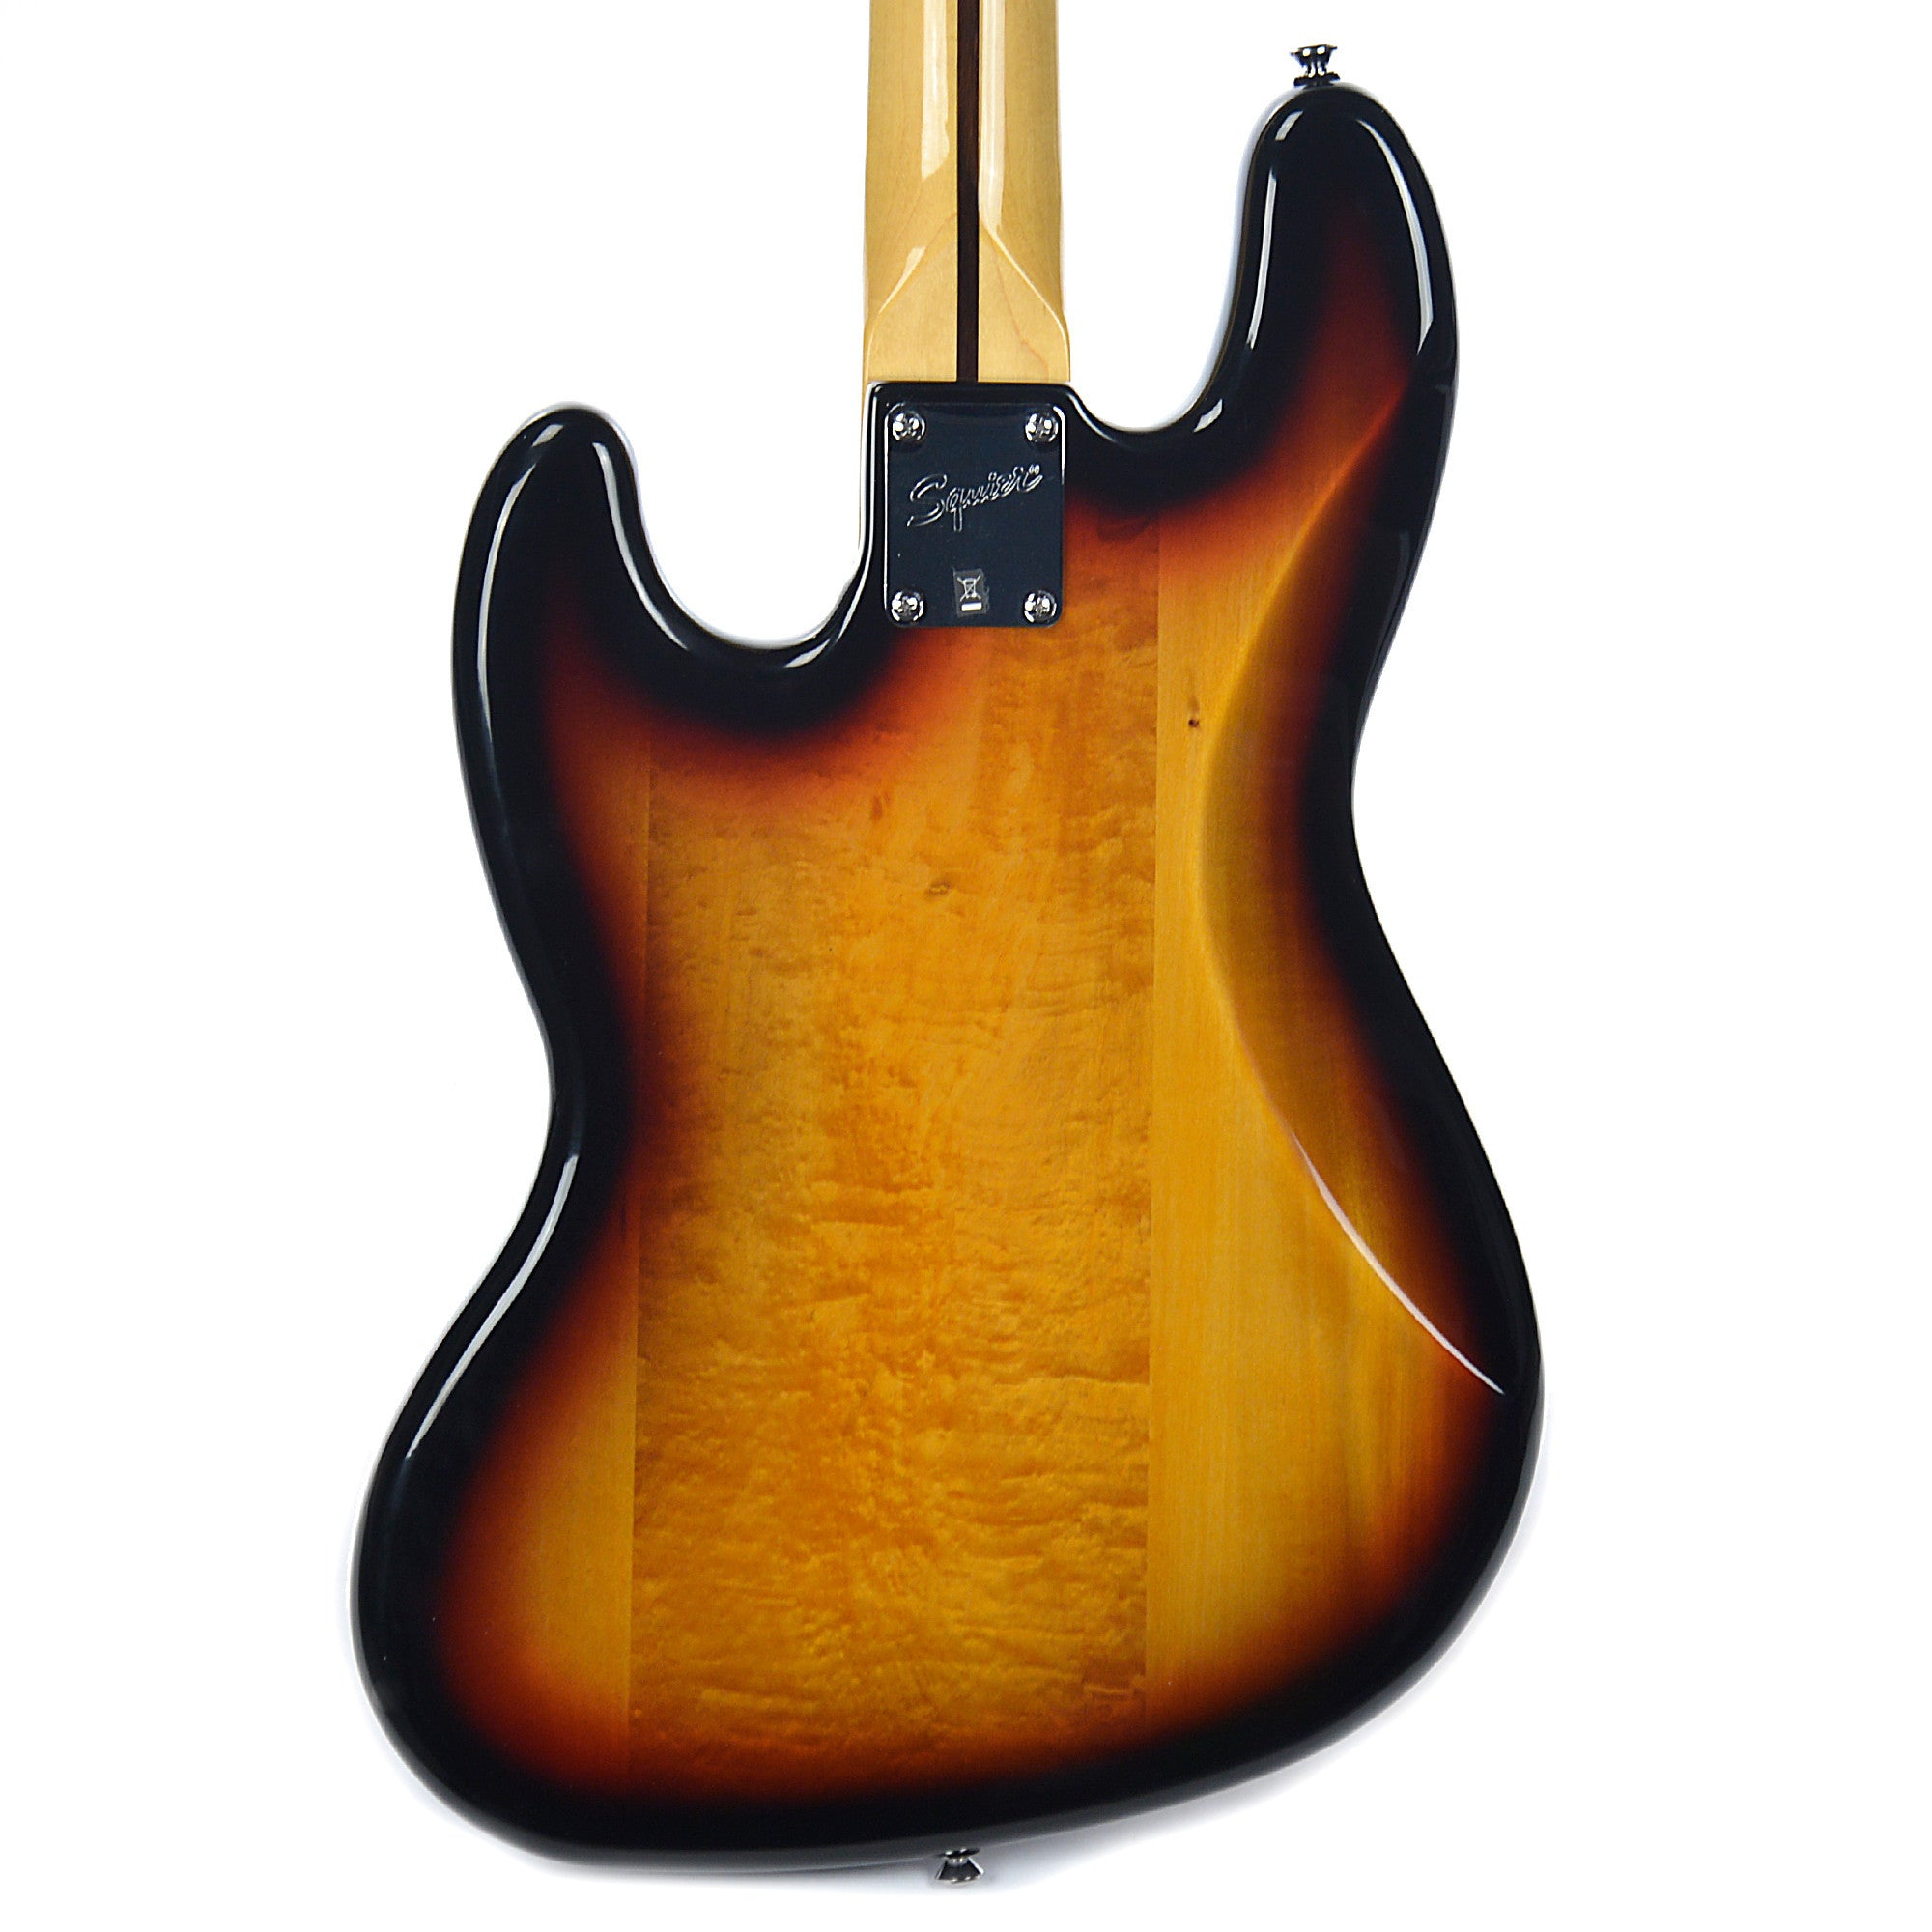 My eb bass squier vintage modified jazz bass -  Squier Vintage Modified Jazz Bass Three Color Sunburst